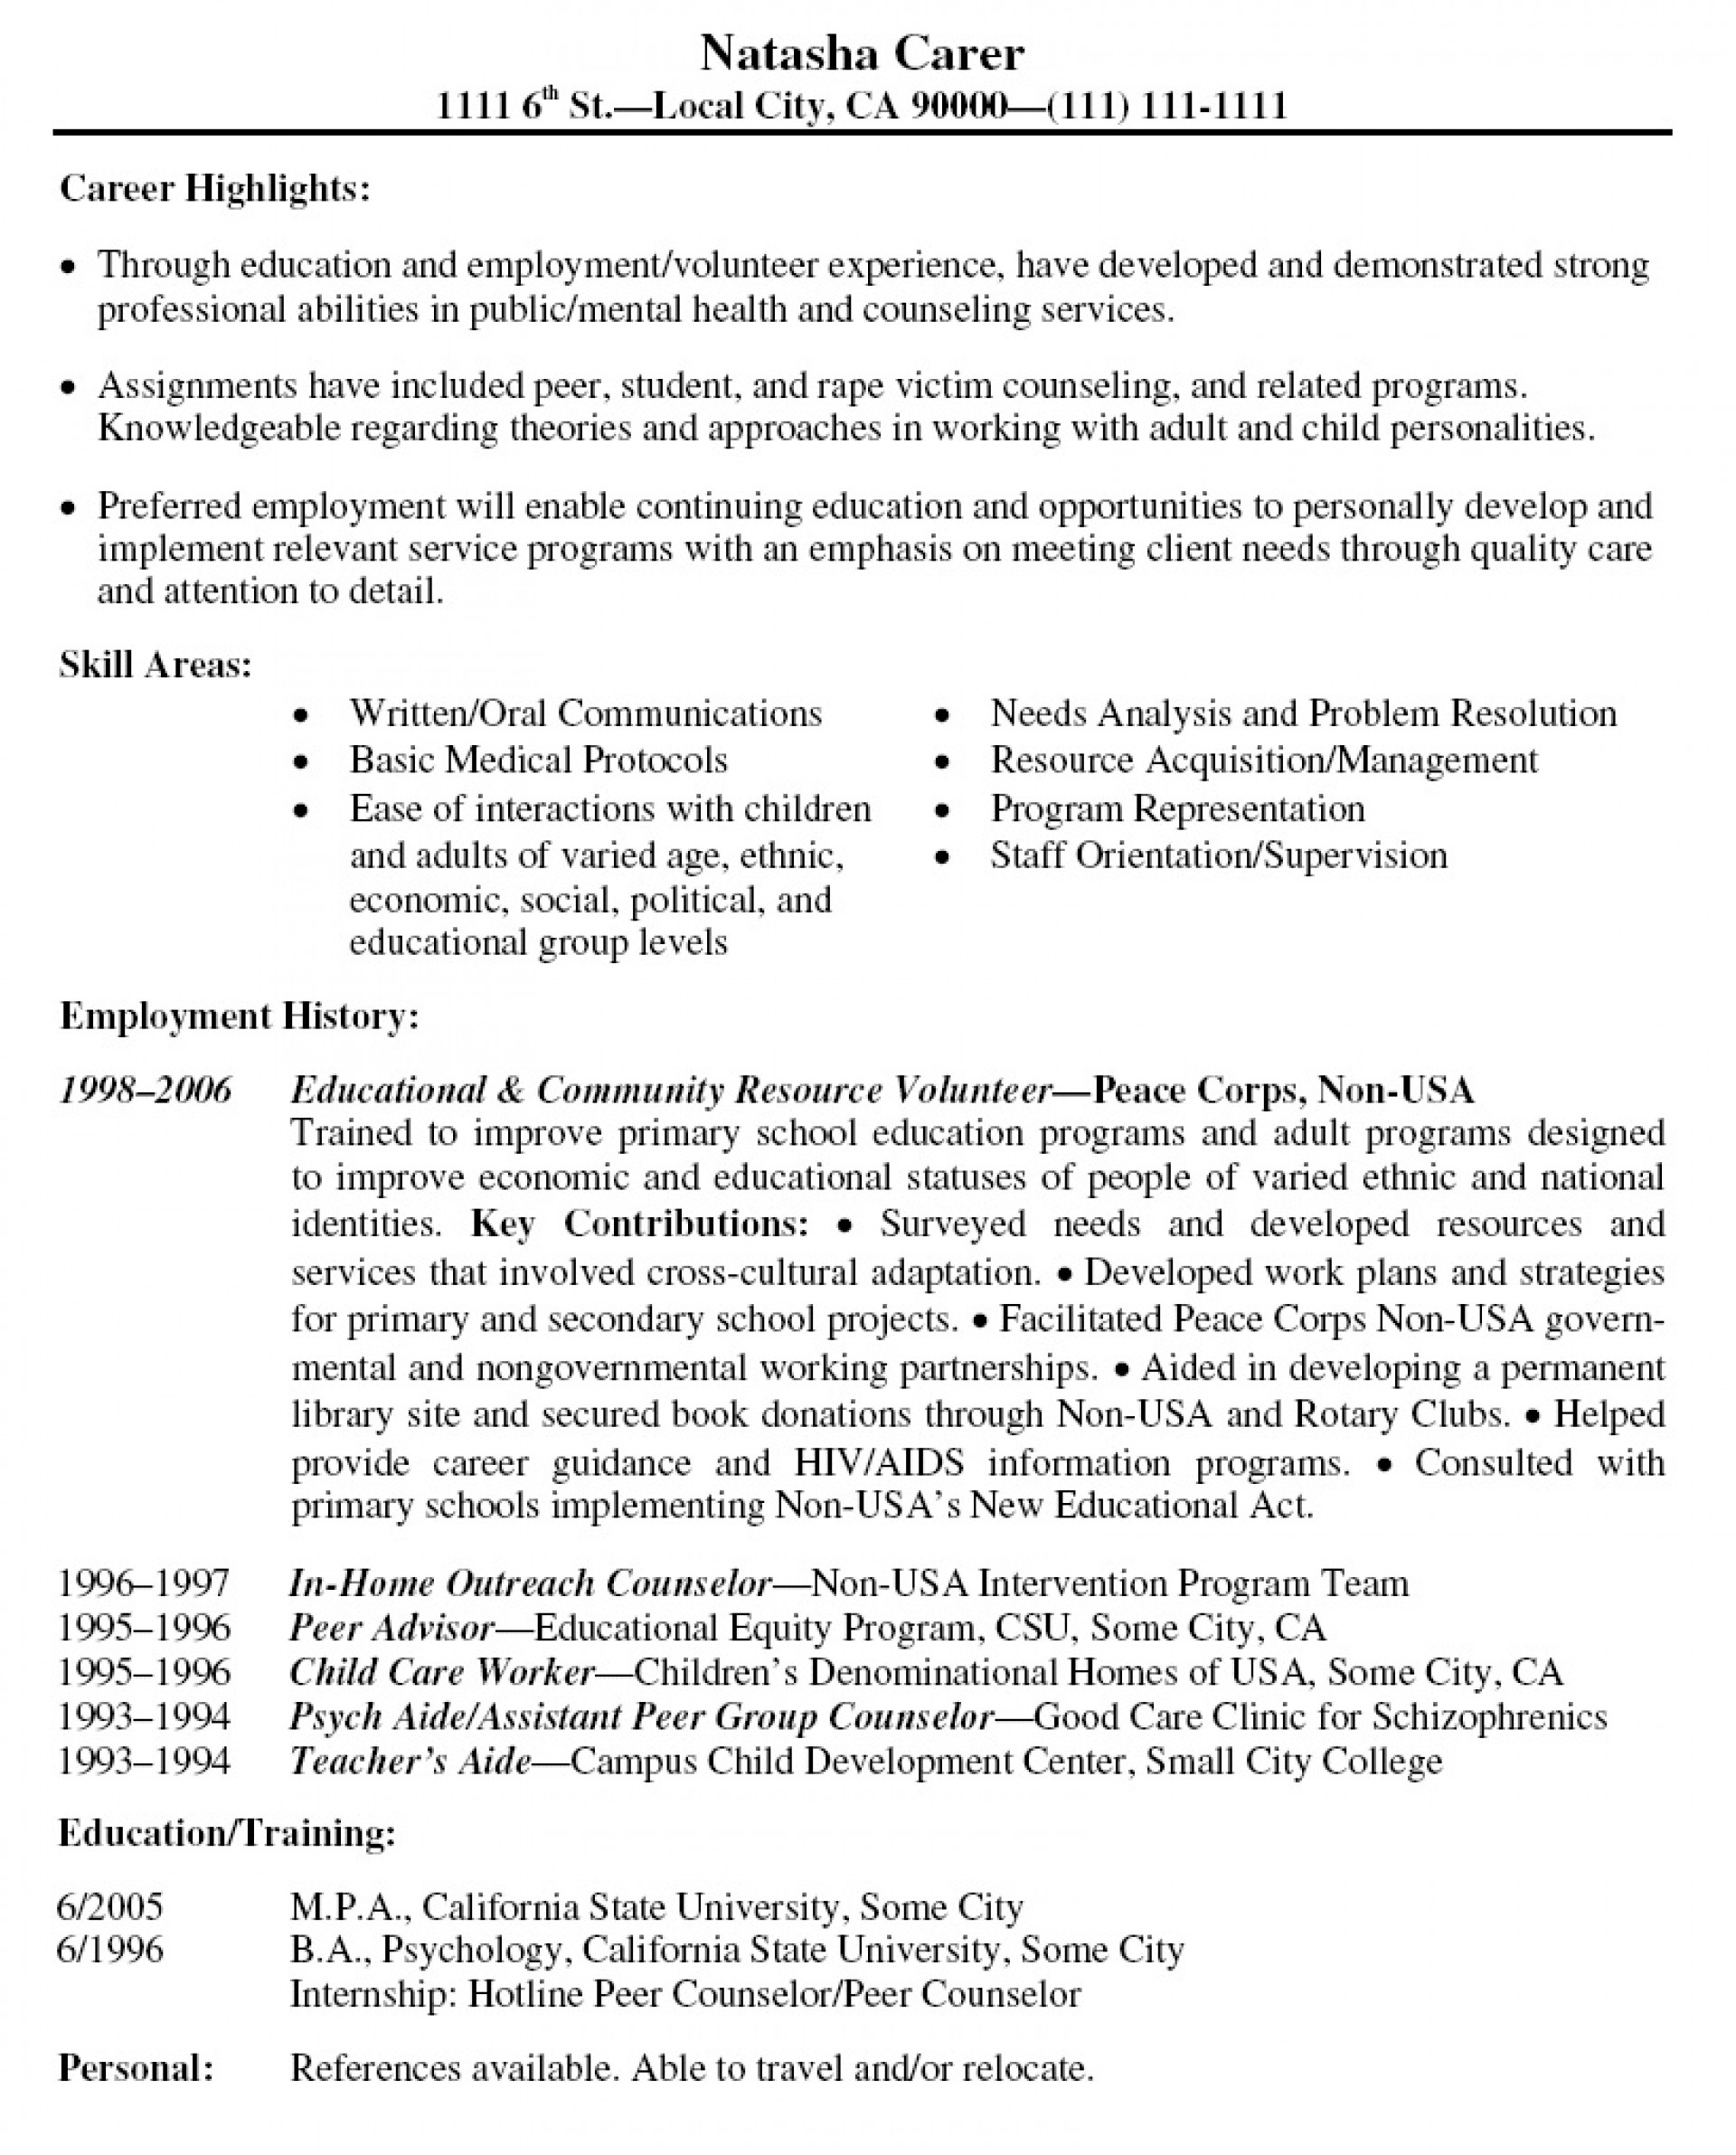 001 Volunteer Experience Essay Resume Example Latest Format L Surprising Hospital Examples Nursing Home 1920